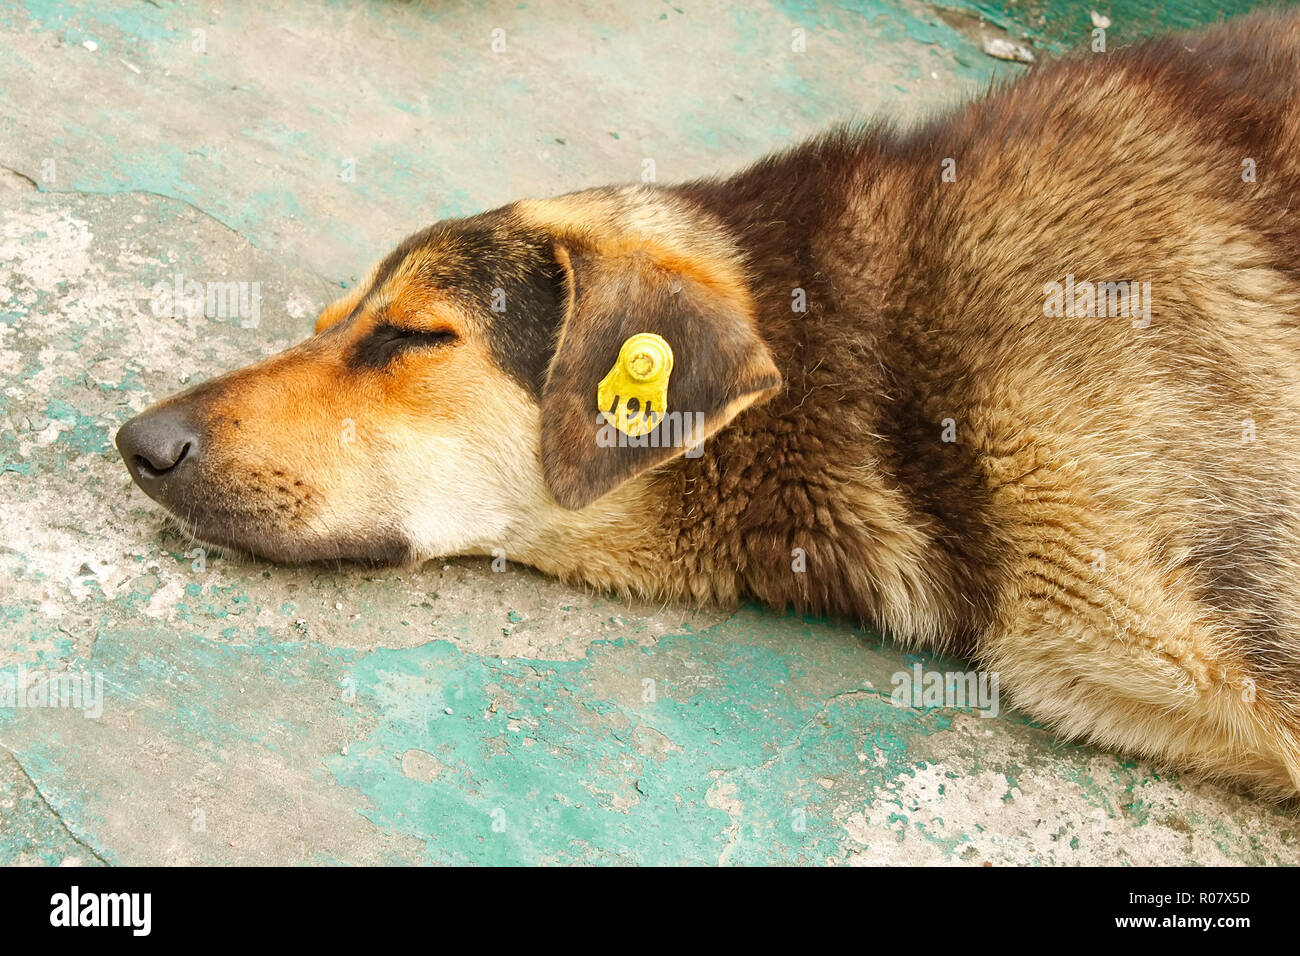 A head of castrated rambling dog labeled in the ear - Stock Image